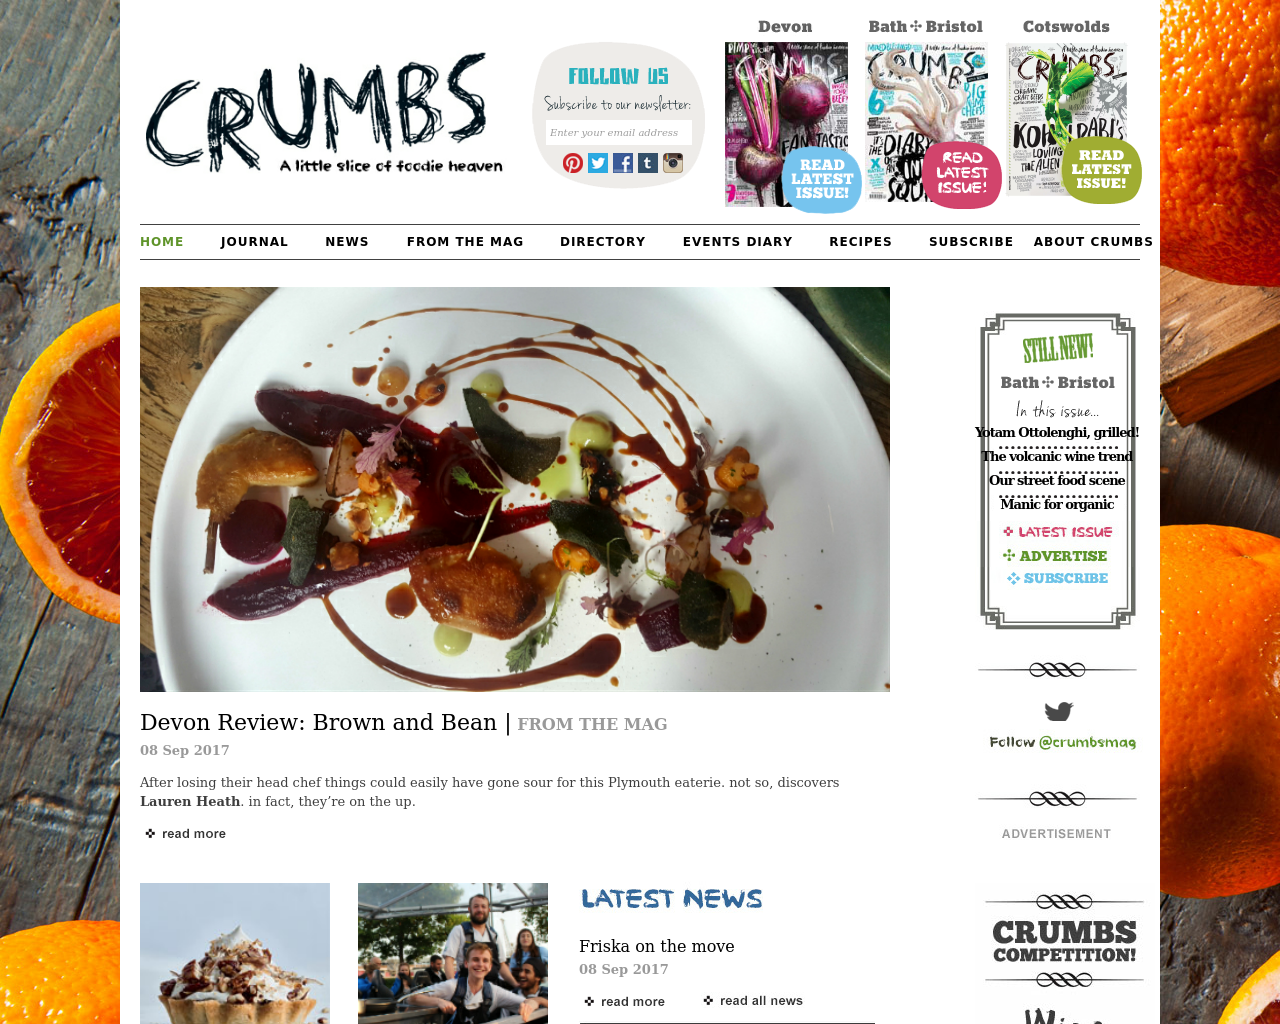 Crumbs-Magazine-Advertising-Reviews-Pricing